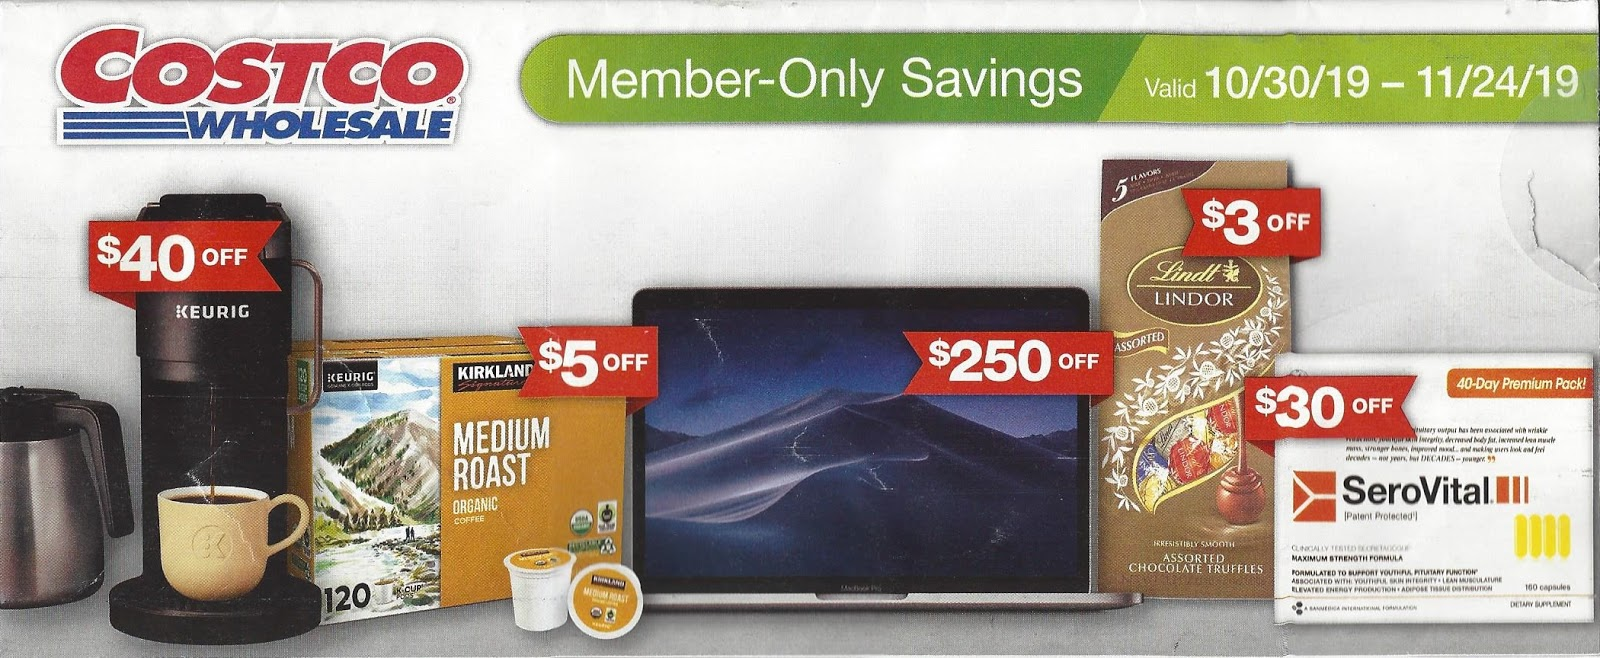 November 2019 Costco Coupon Book